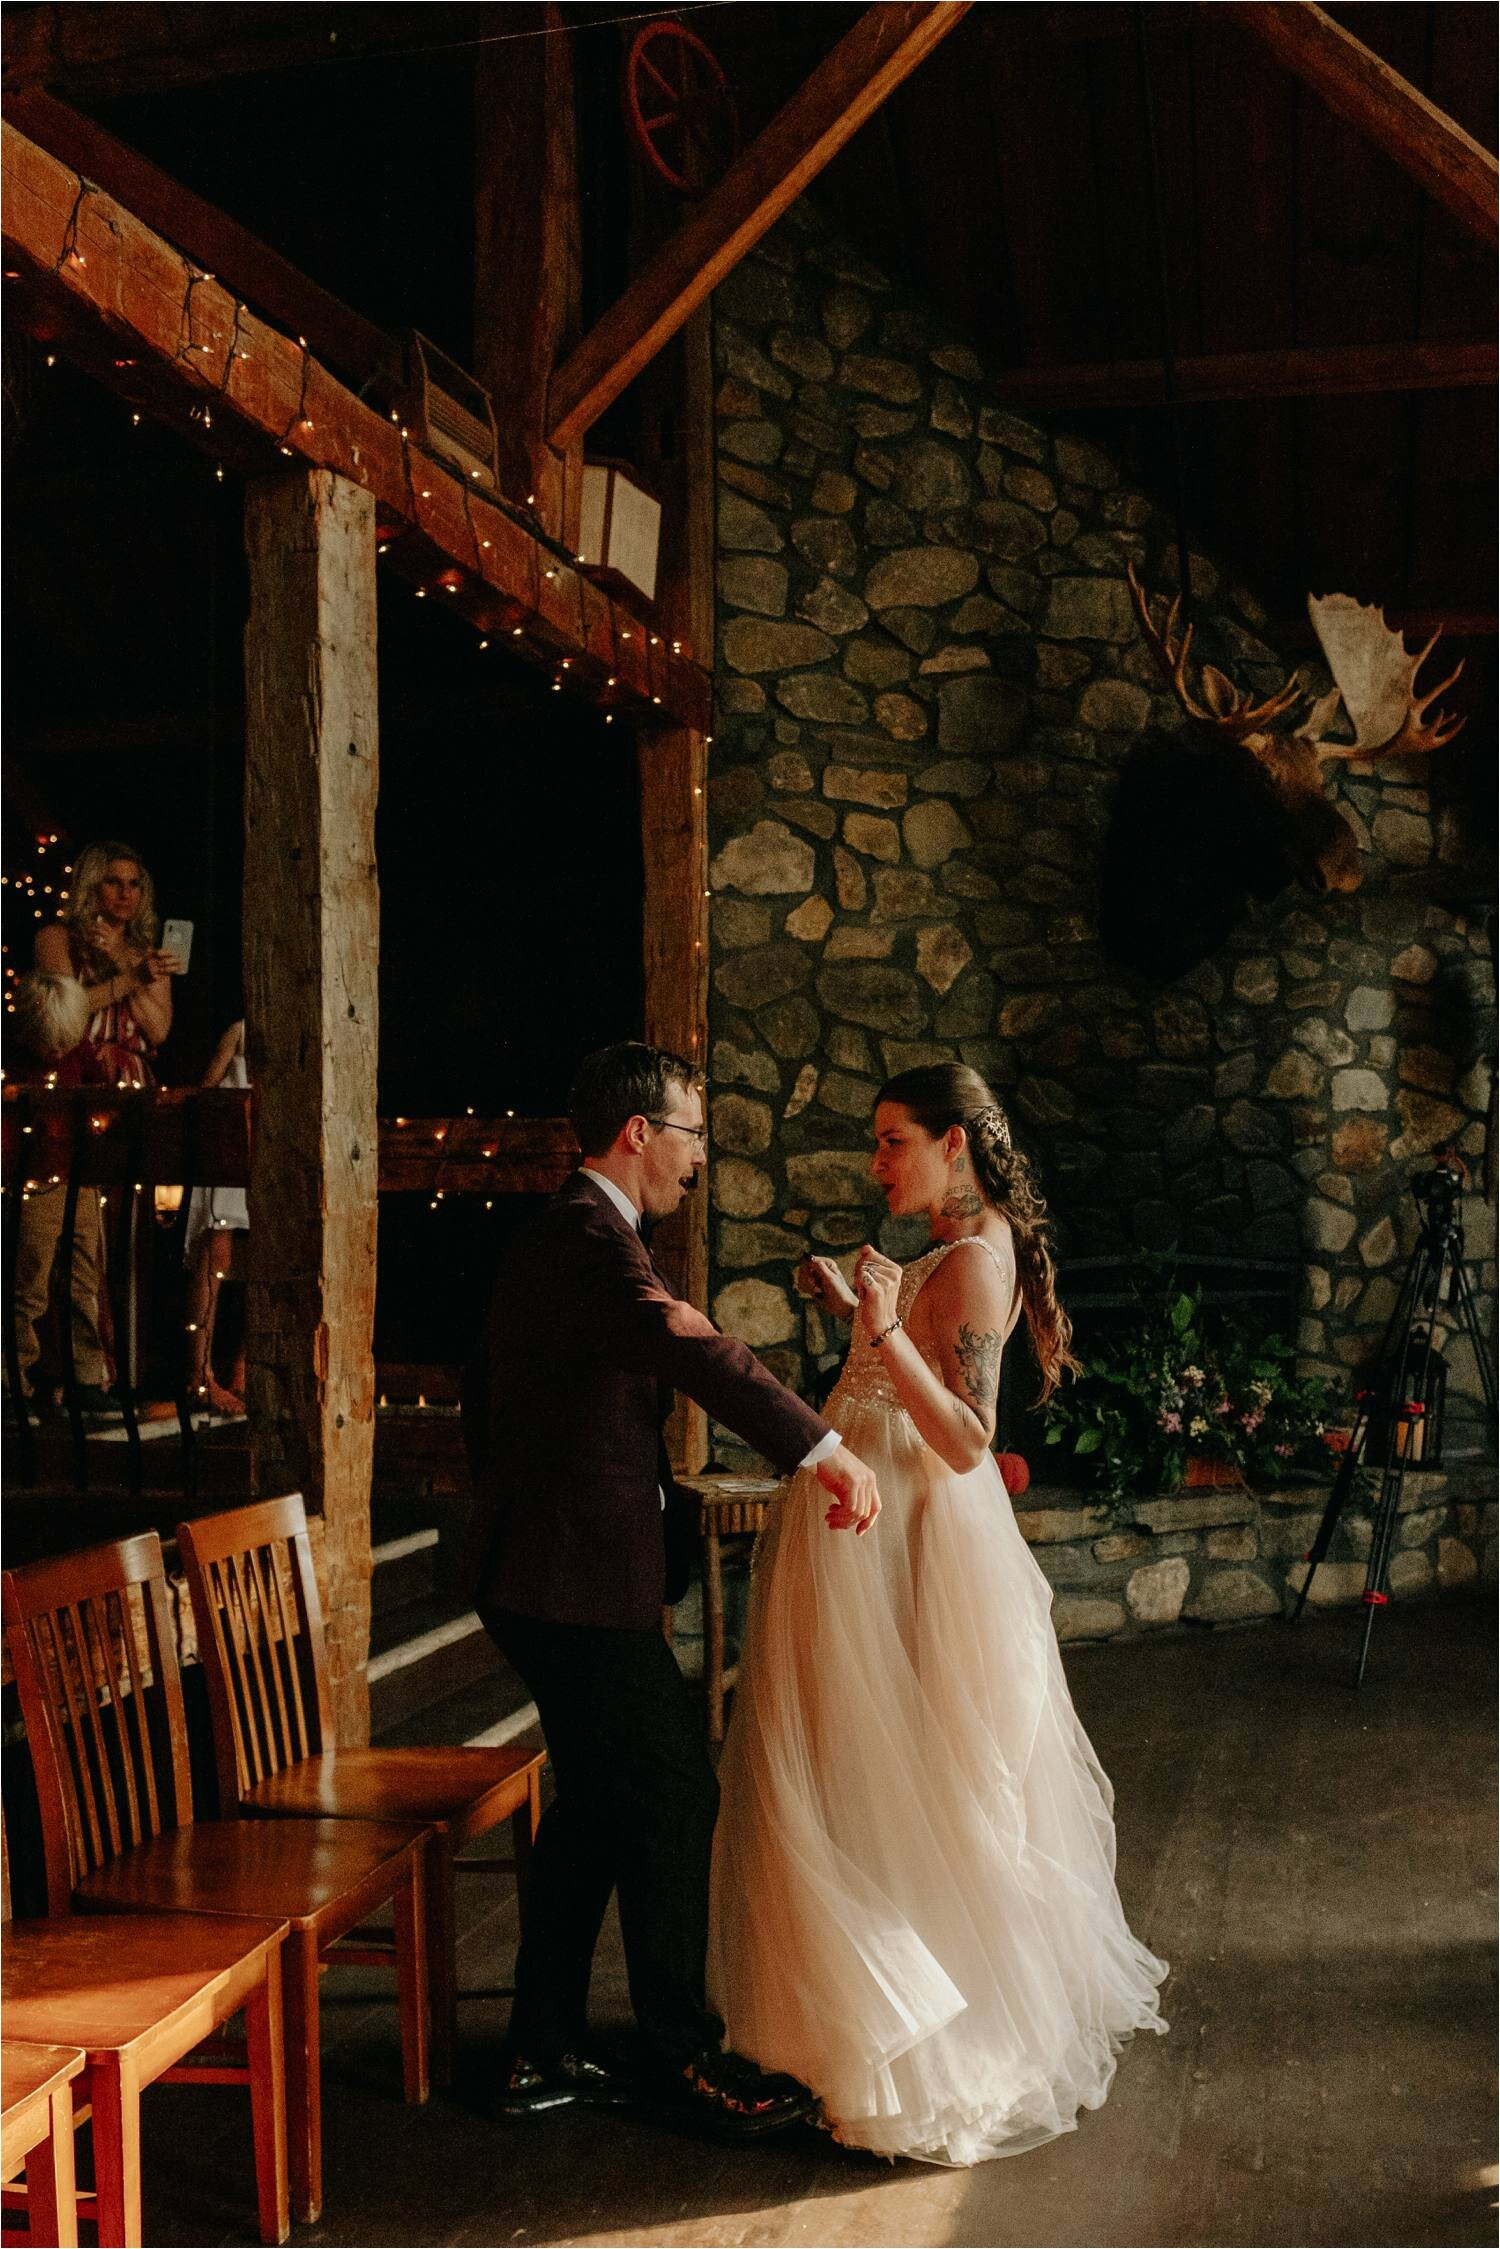 First Dance Wedding Reception at Whitney's Inn White Mountains New Hampshire - Jemima Richards - Jemima Richards